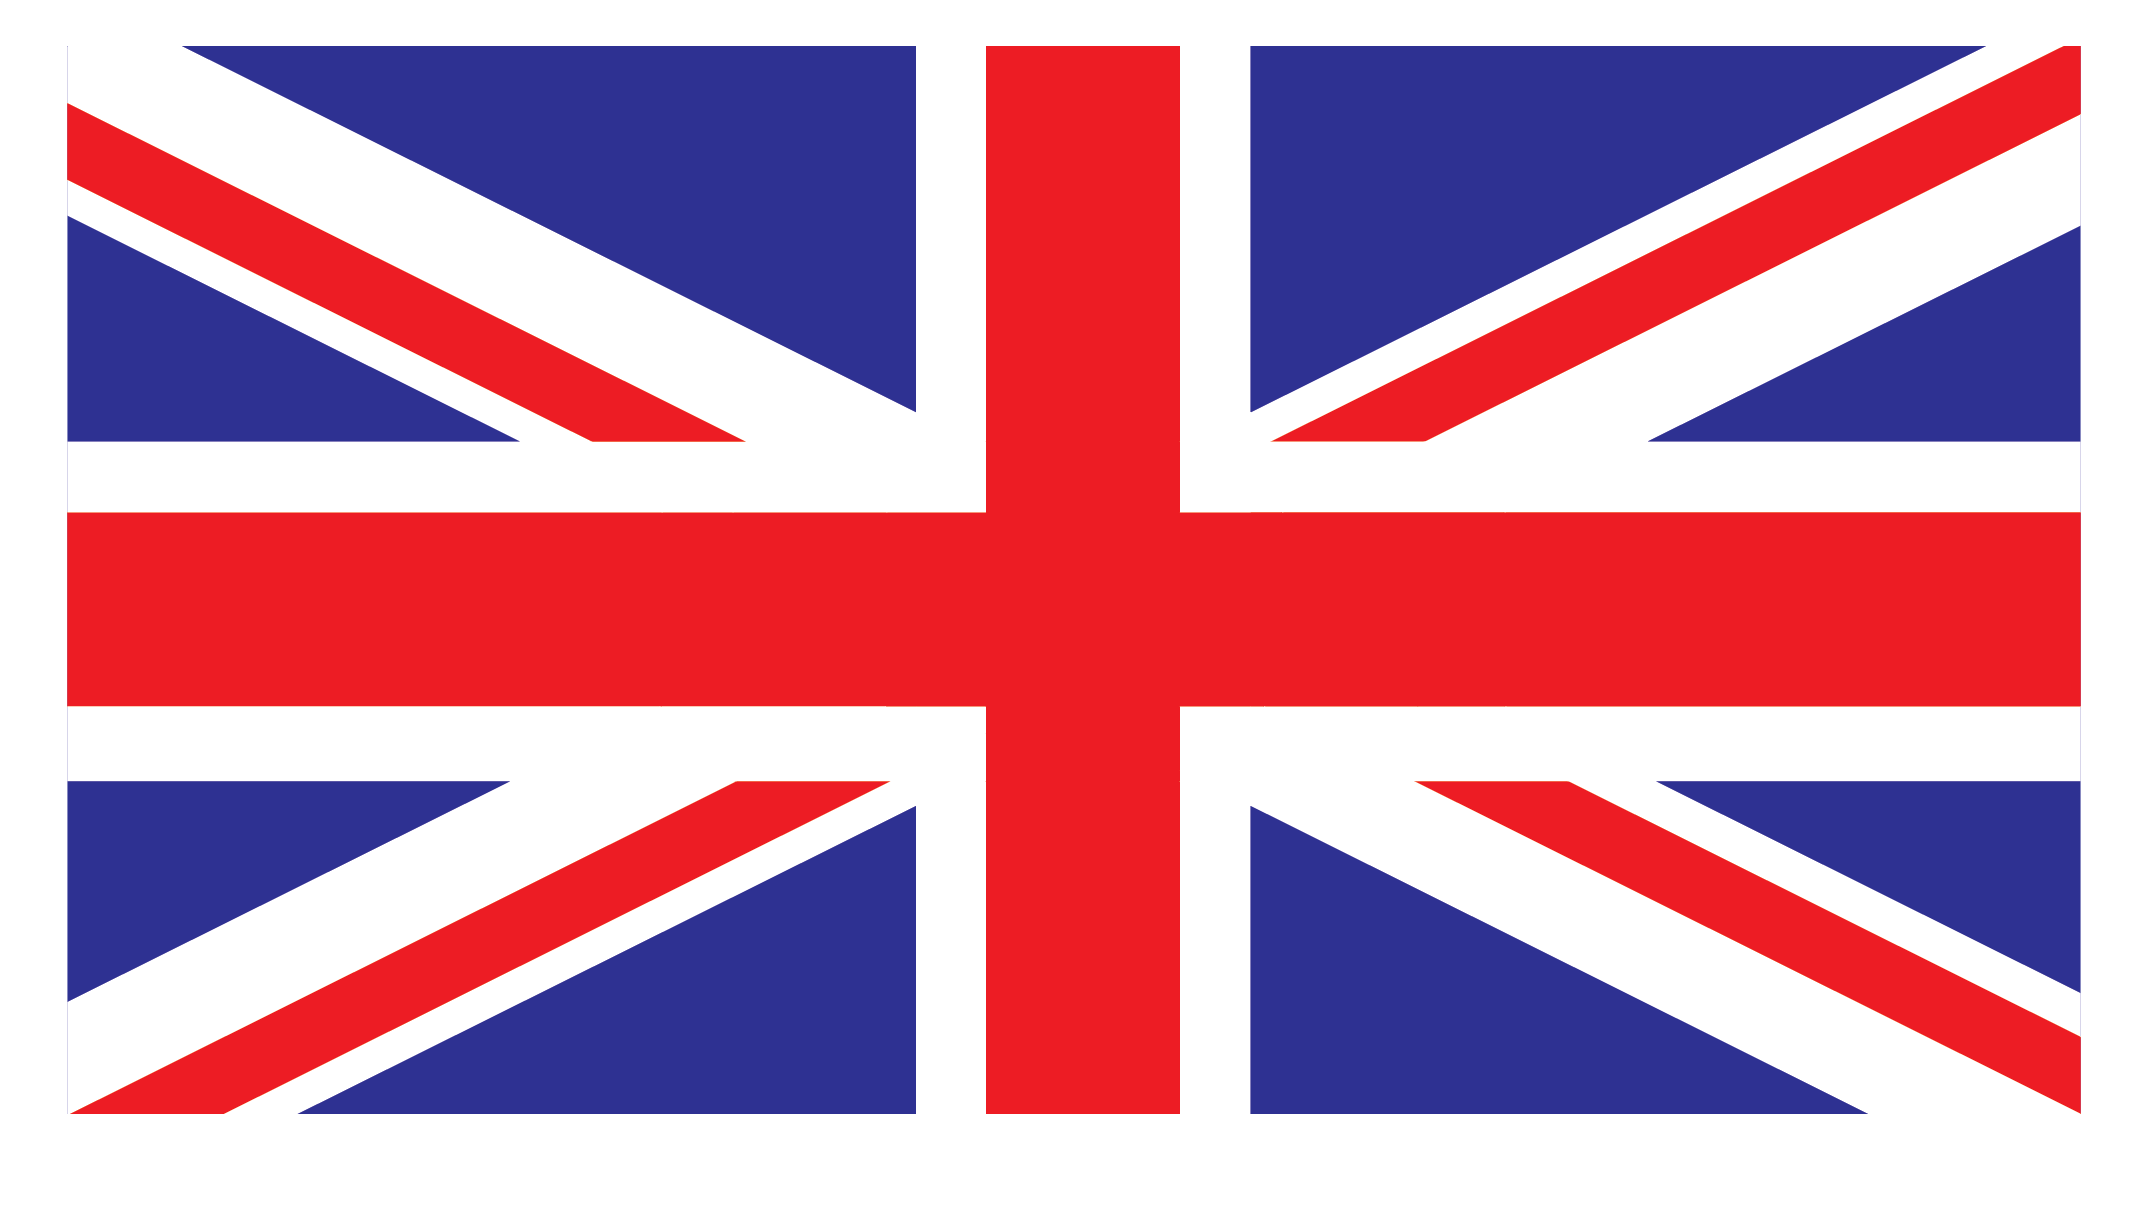 Union jack clipart free jpg freeuse library Free clipart union jack flag » Clipart Portal jpg freeuse library